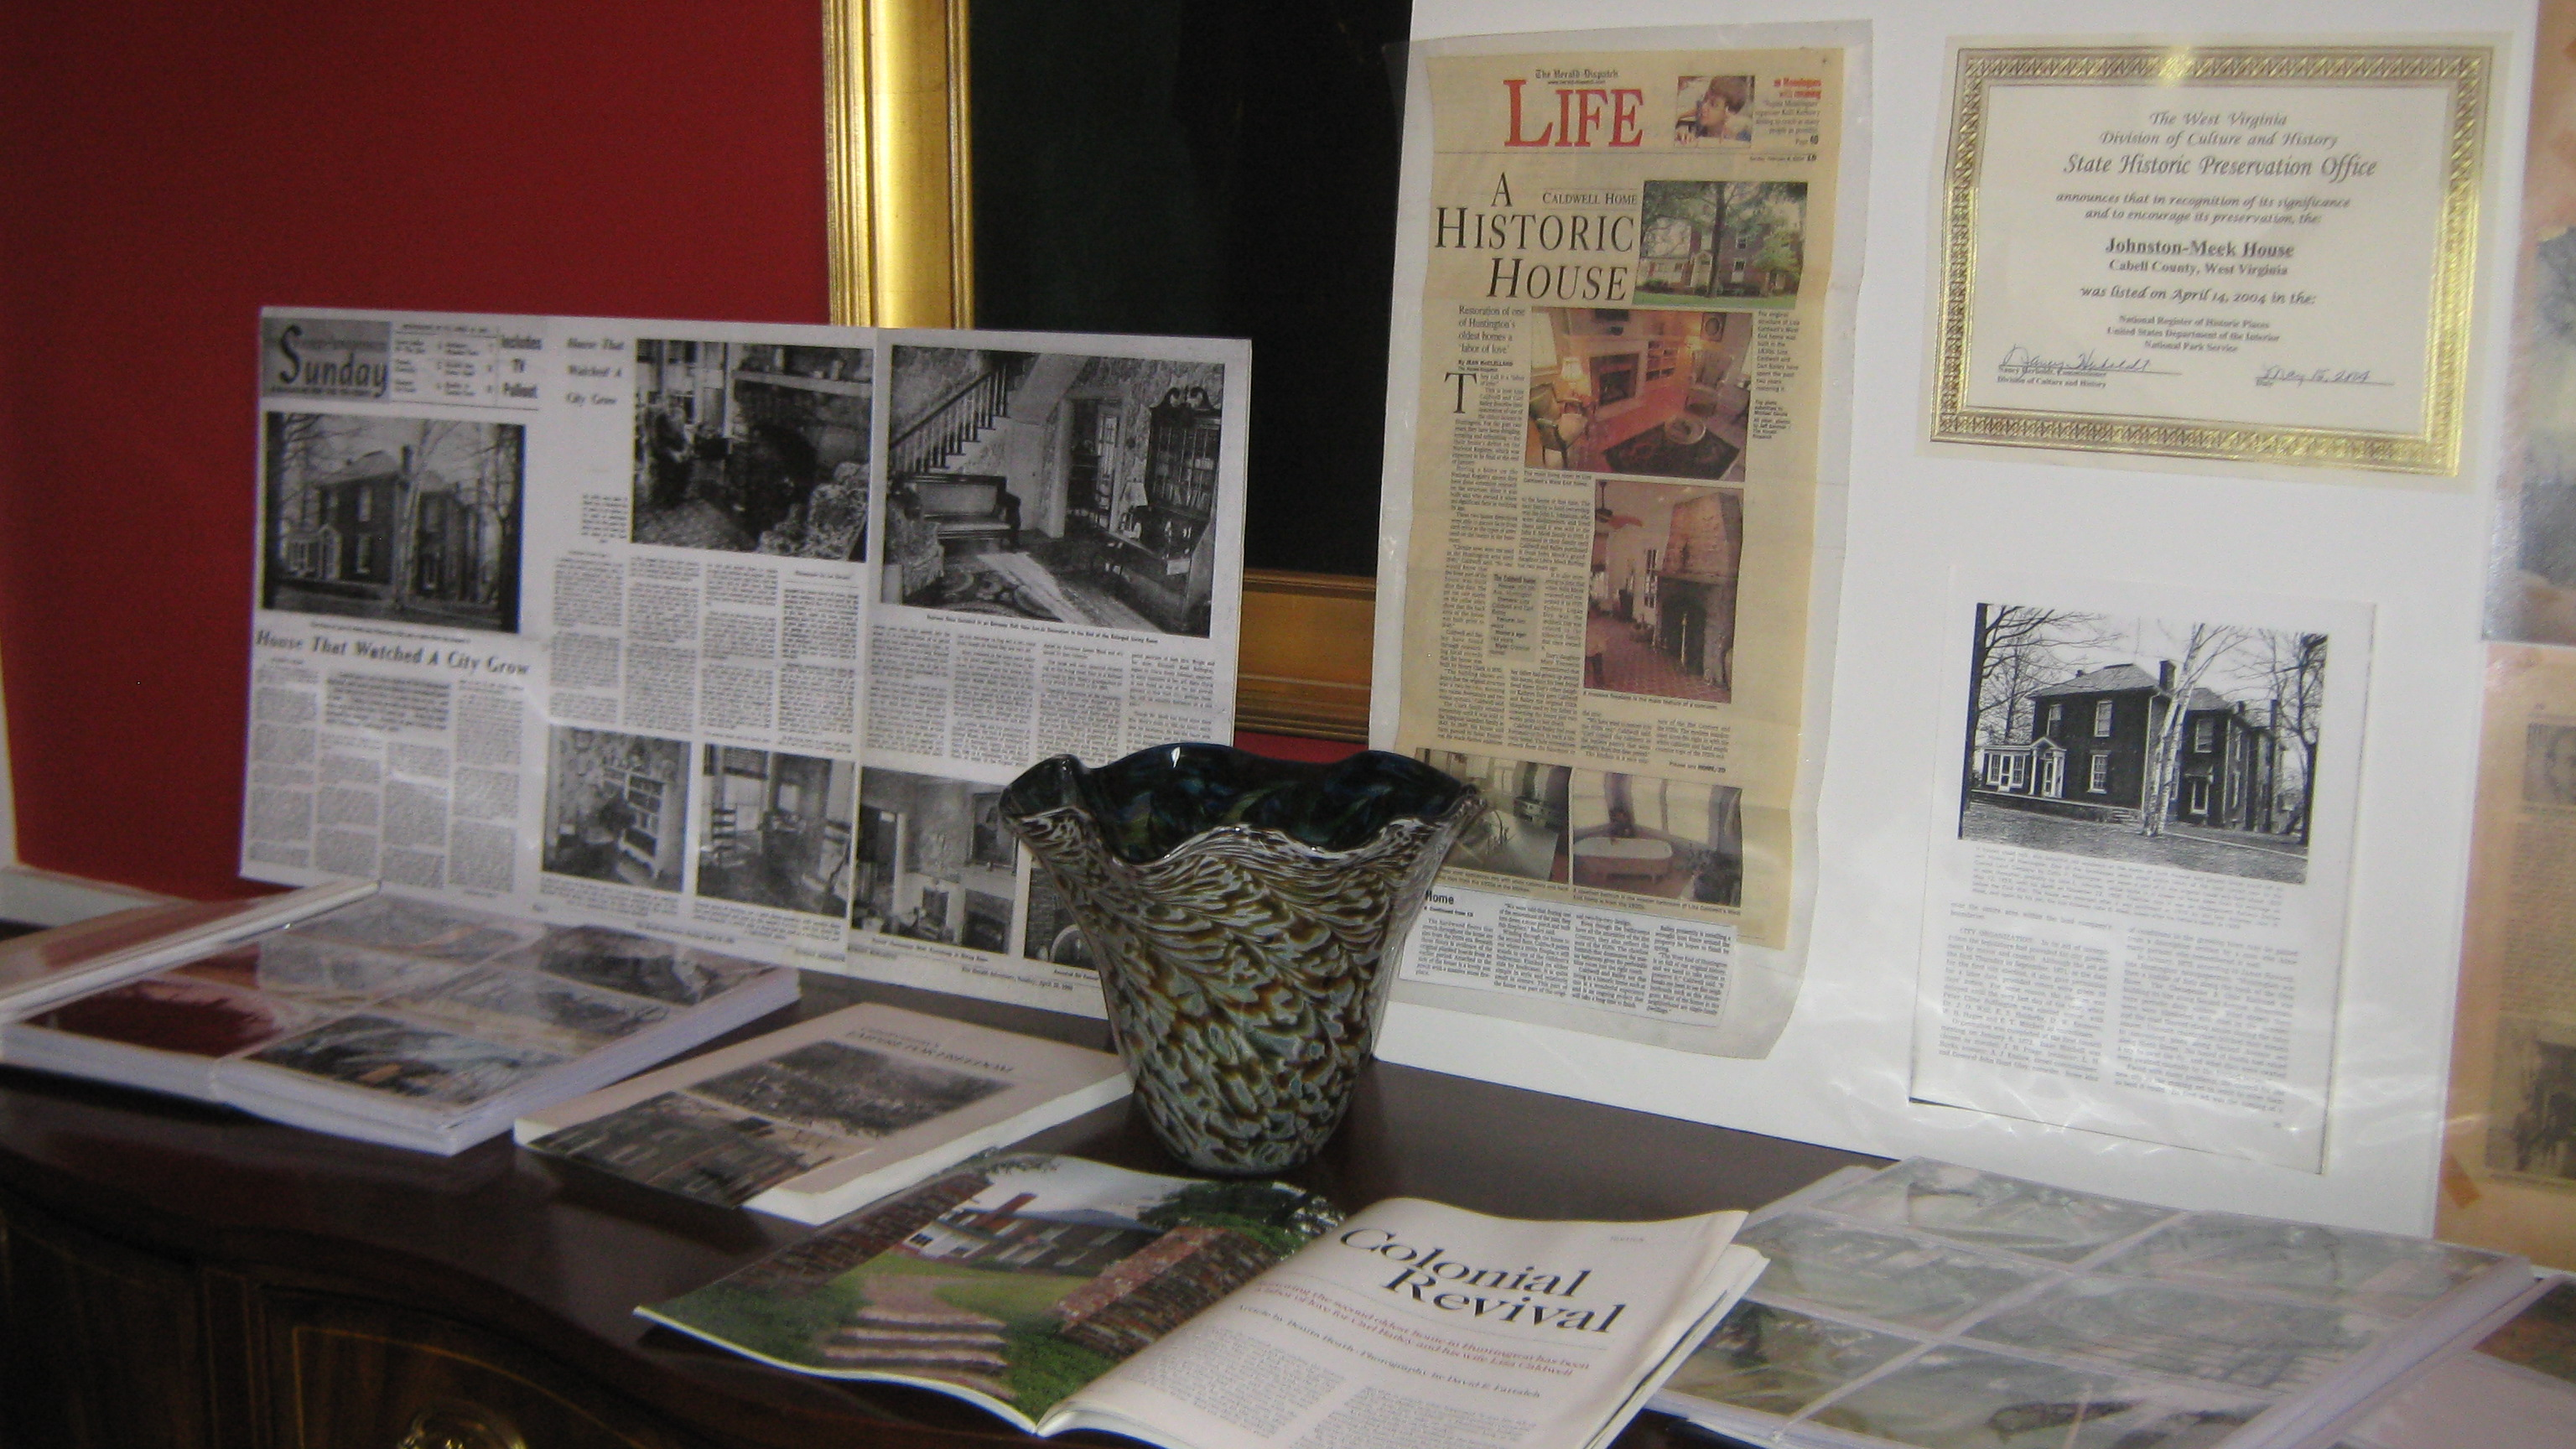 Memorabilia relating to the history of the house, now preserved for visitors.